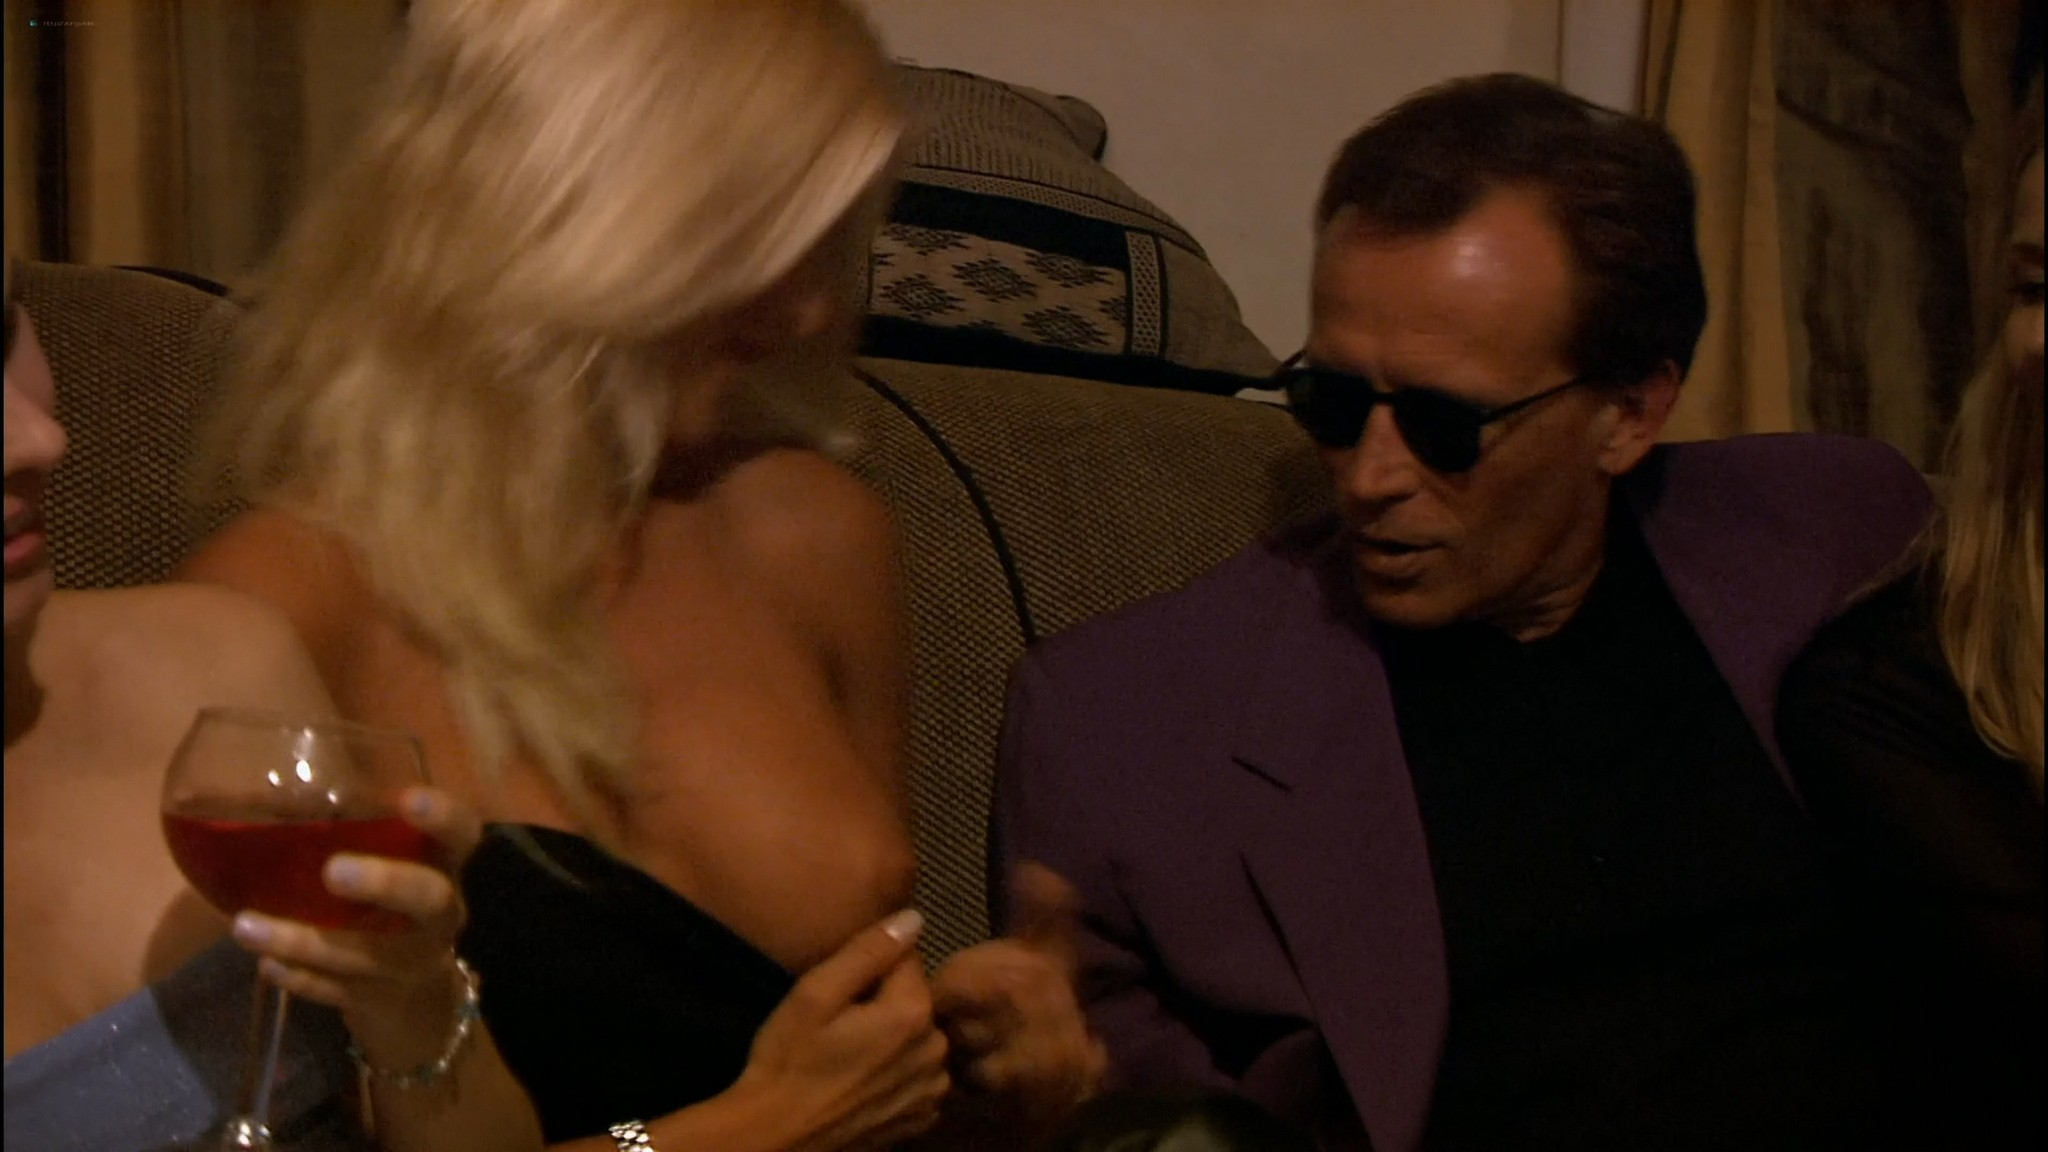 Lisa Enos nude full frontal Victoria Silvstedt boobs other sexy Ivans xtc 2000 HD 1080p BluRay 012